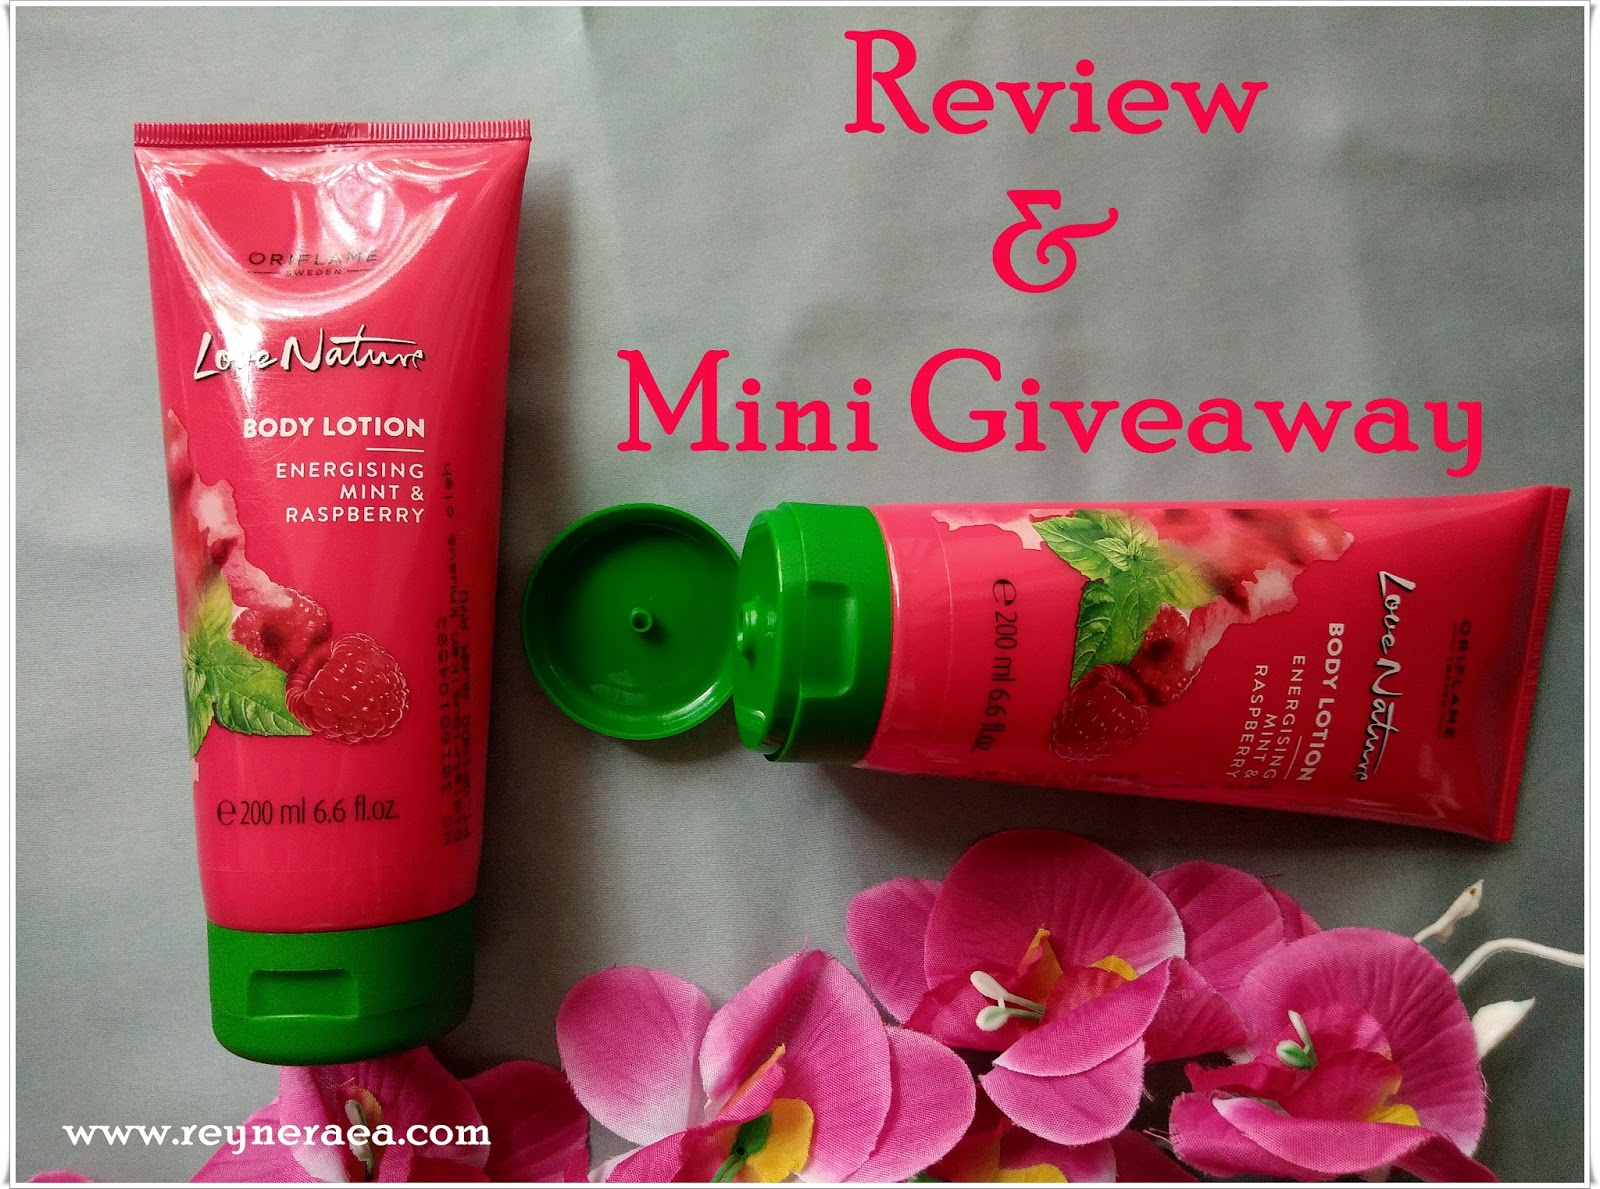 Review   Mini GiveAway  Love Nature Body Lotion Energising Mint   Raspberry cb28b23353